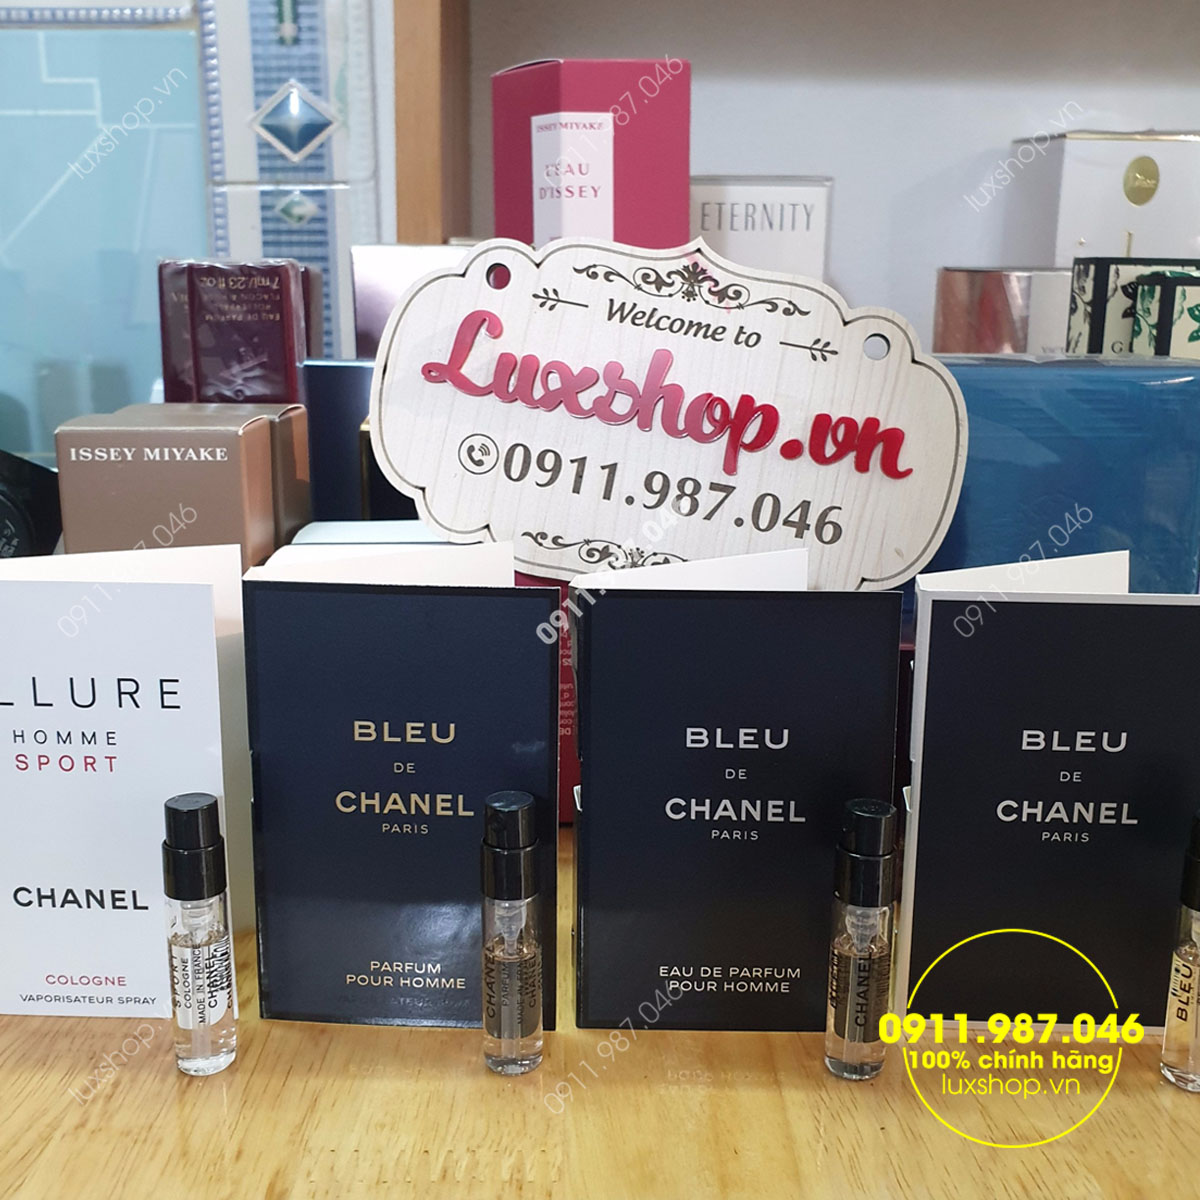 set-4-mini-chanel-nam-460k-con-340k--bleu-edp-bleu-parfum-bleu-edt-allure-cologne-chinh-hang-phap-l95823